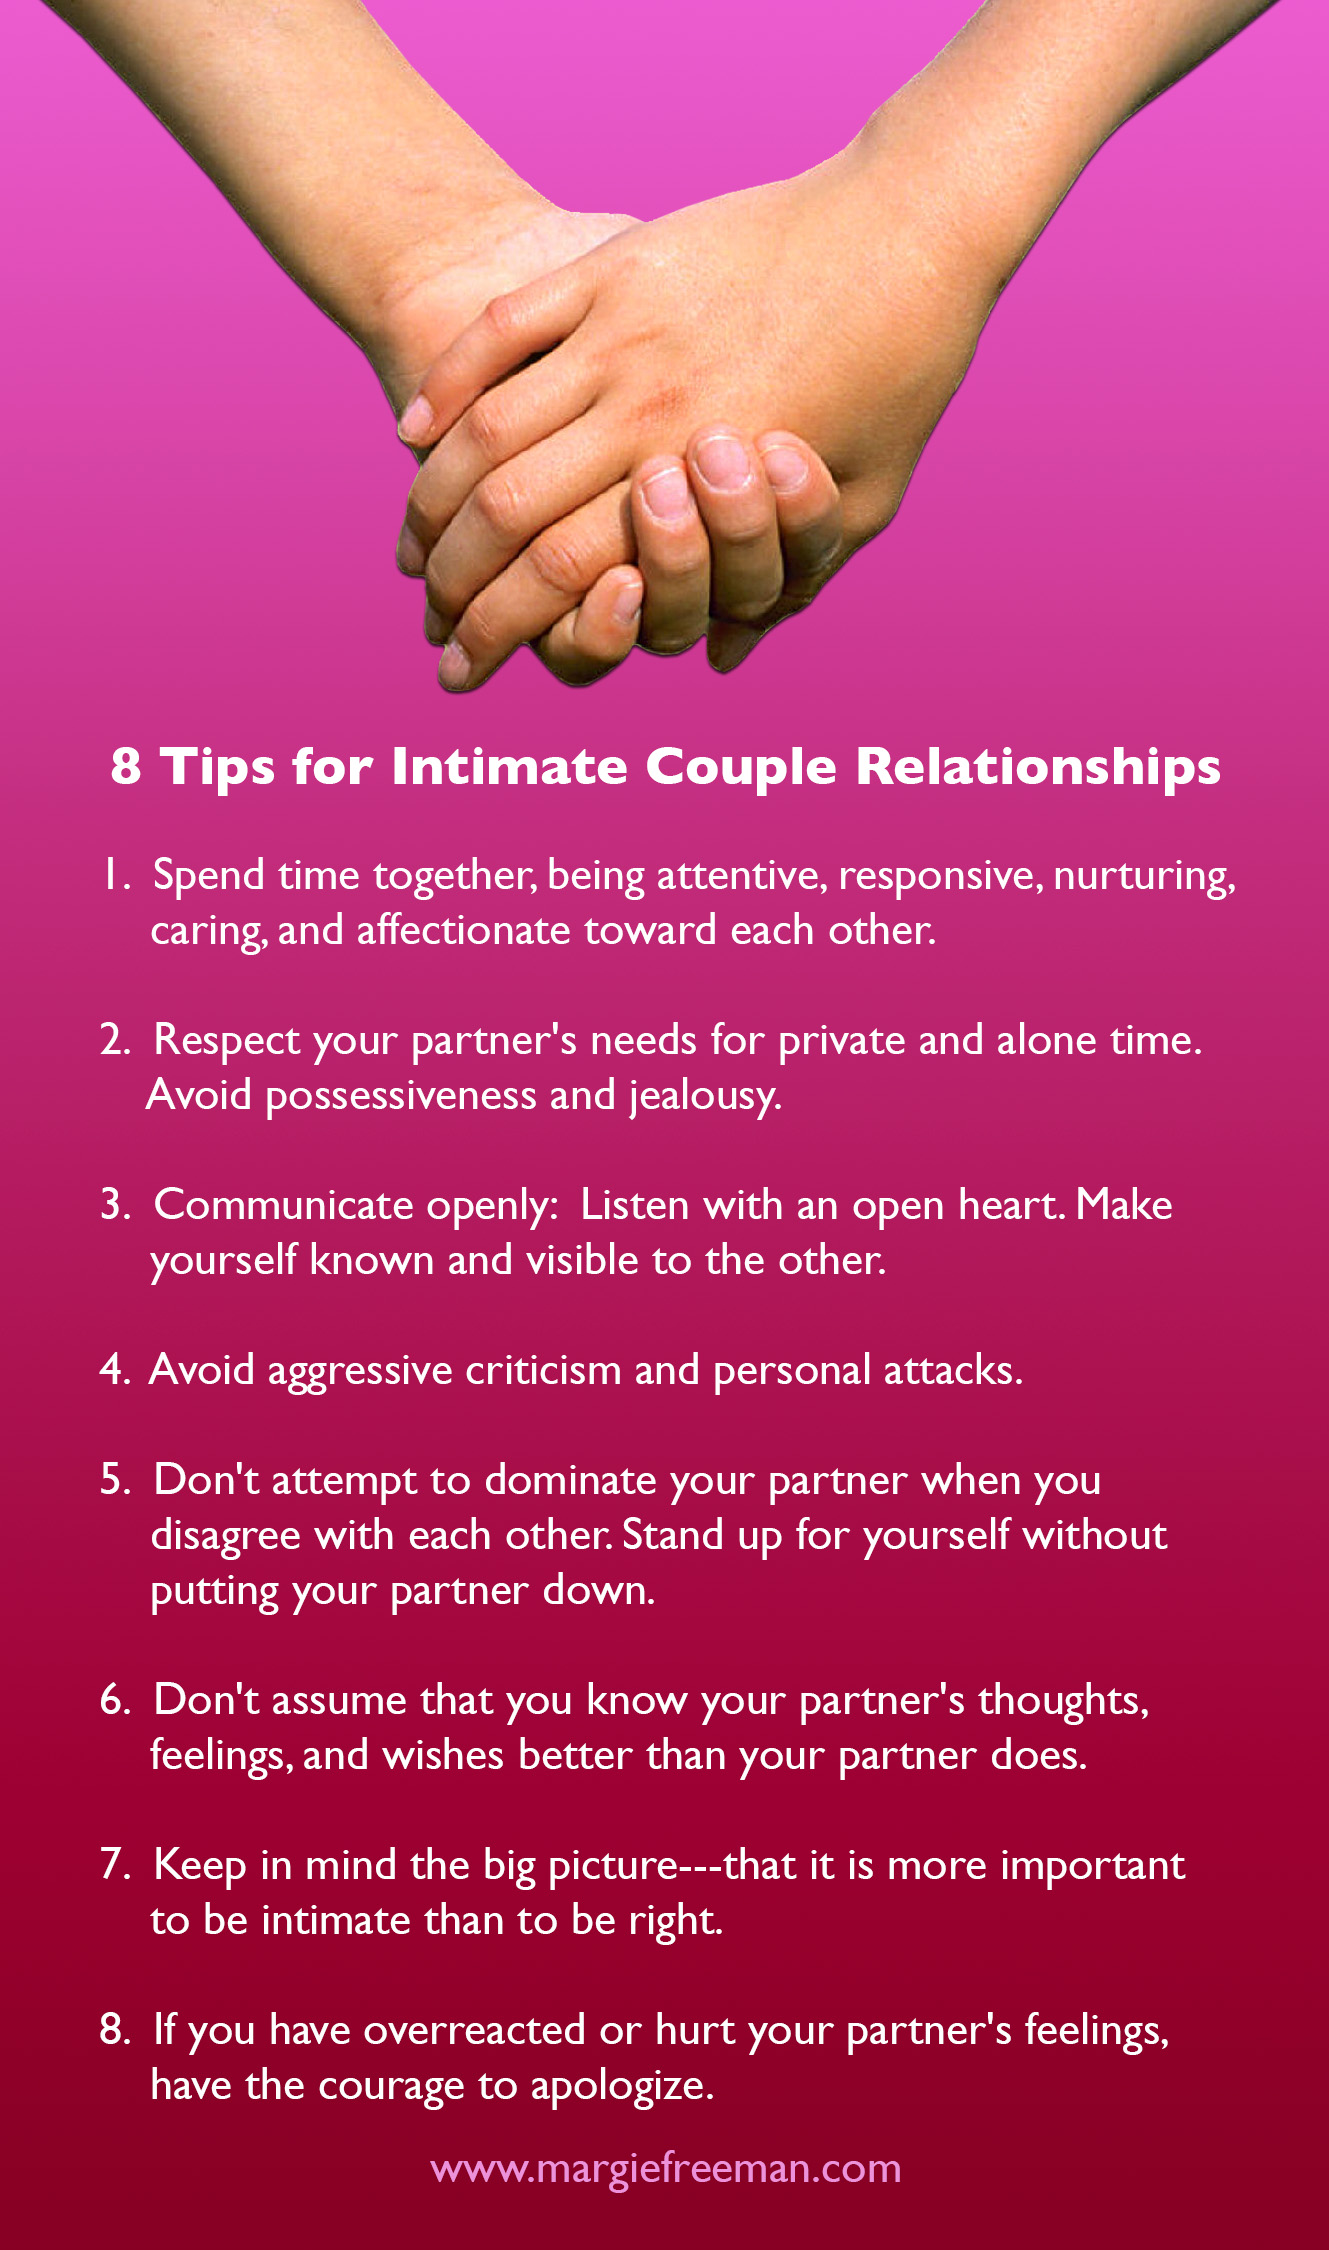 8 Tips for Intimate Couple Relationships - Margie Freeman LCSW